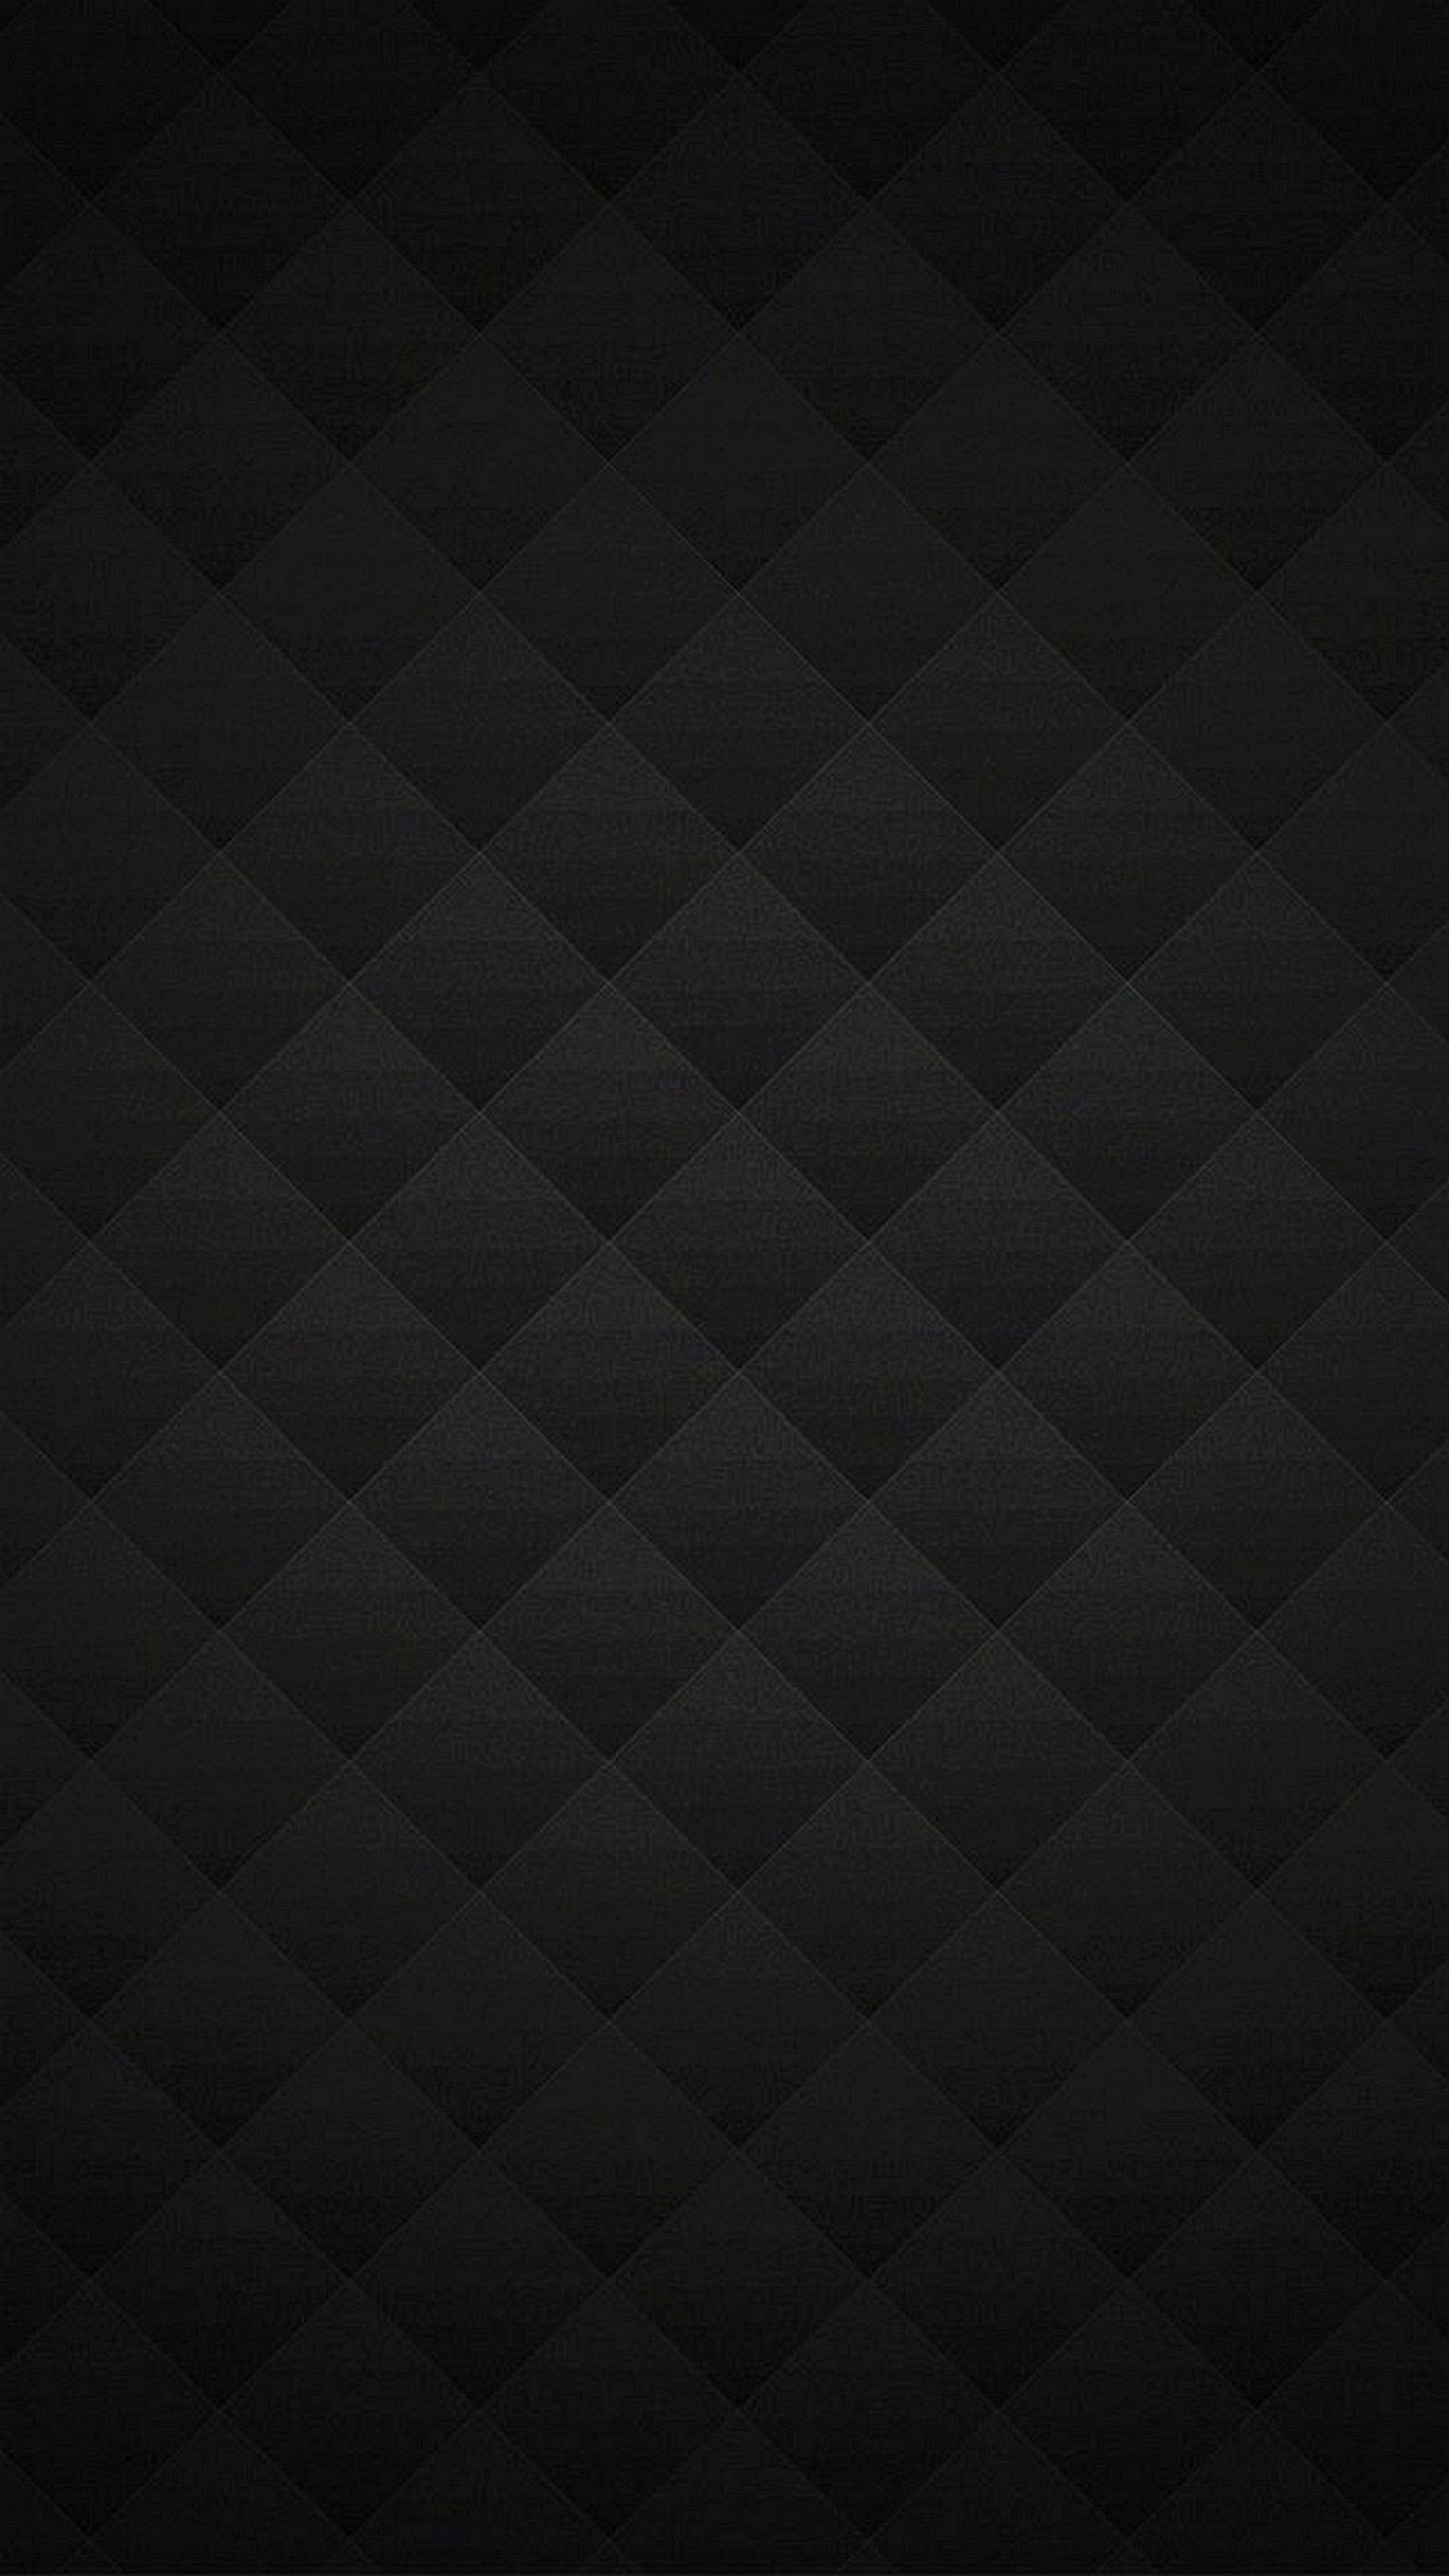 Black 2160x3840 Wallpapers Top Free Black 2160x3840 Backgrounds Wallpaperaccess